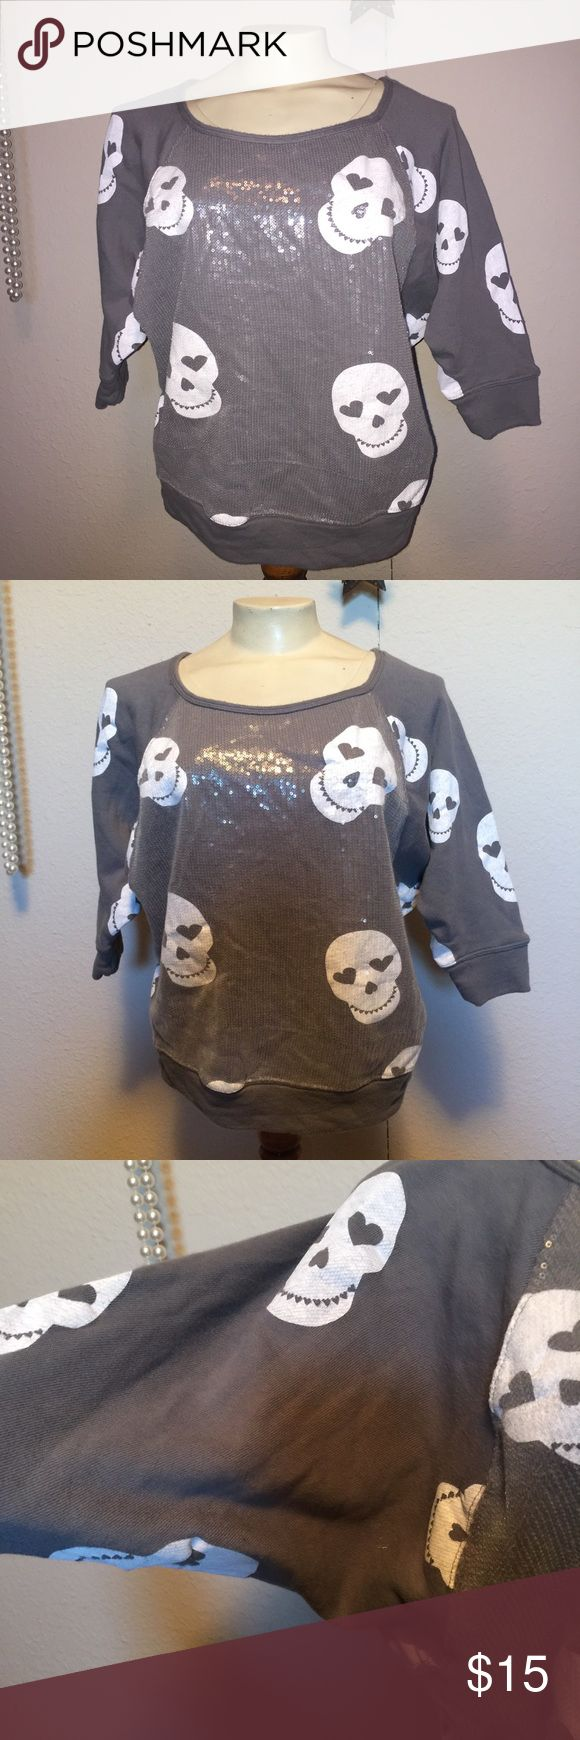 Gray skull dolman batwing shirt top Cute gray skull dolman batwing shirt top size xl.  ~ I am open to reasonable offers. ~I do my best to describe each item thoroughly. If something is missed it is completely unintentional.  ~Be sure to check out my other listings for more great items & save on shipping! ~I ship same day or next day.  ~ I do not hold items.   ~Not responsible for incorrect sizing. I go by what the tag says its up to the buyer to know their size. Hard Candy Tops Sweatshirts…